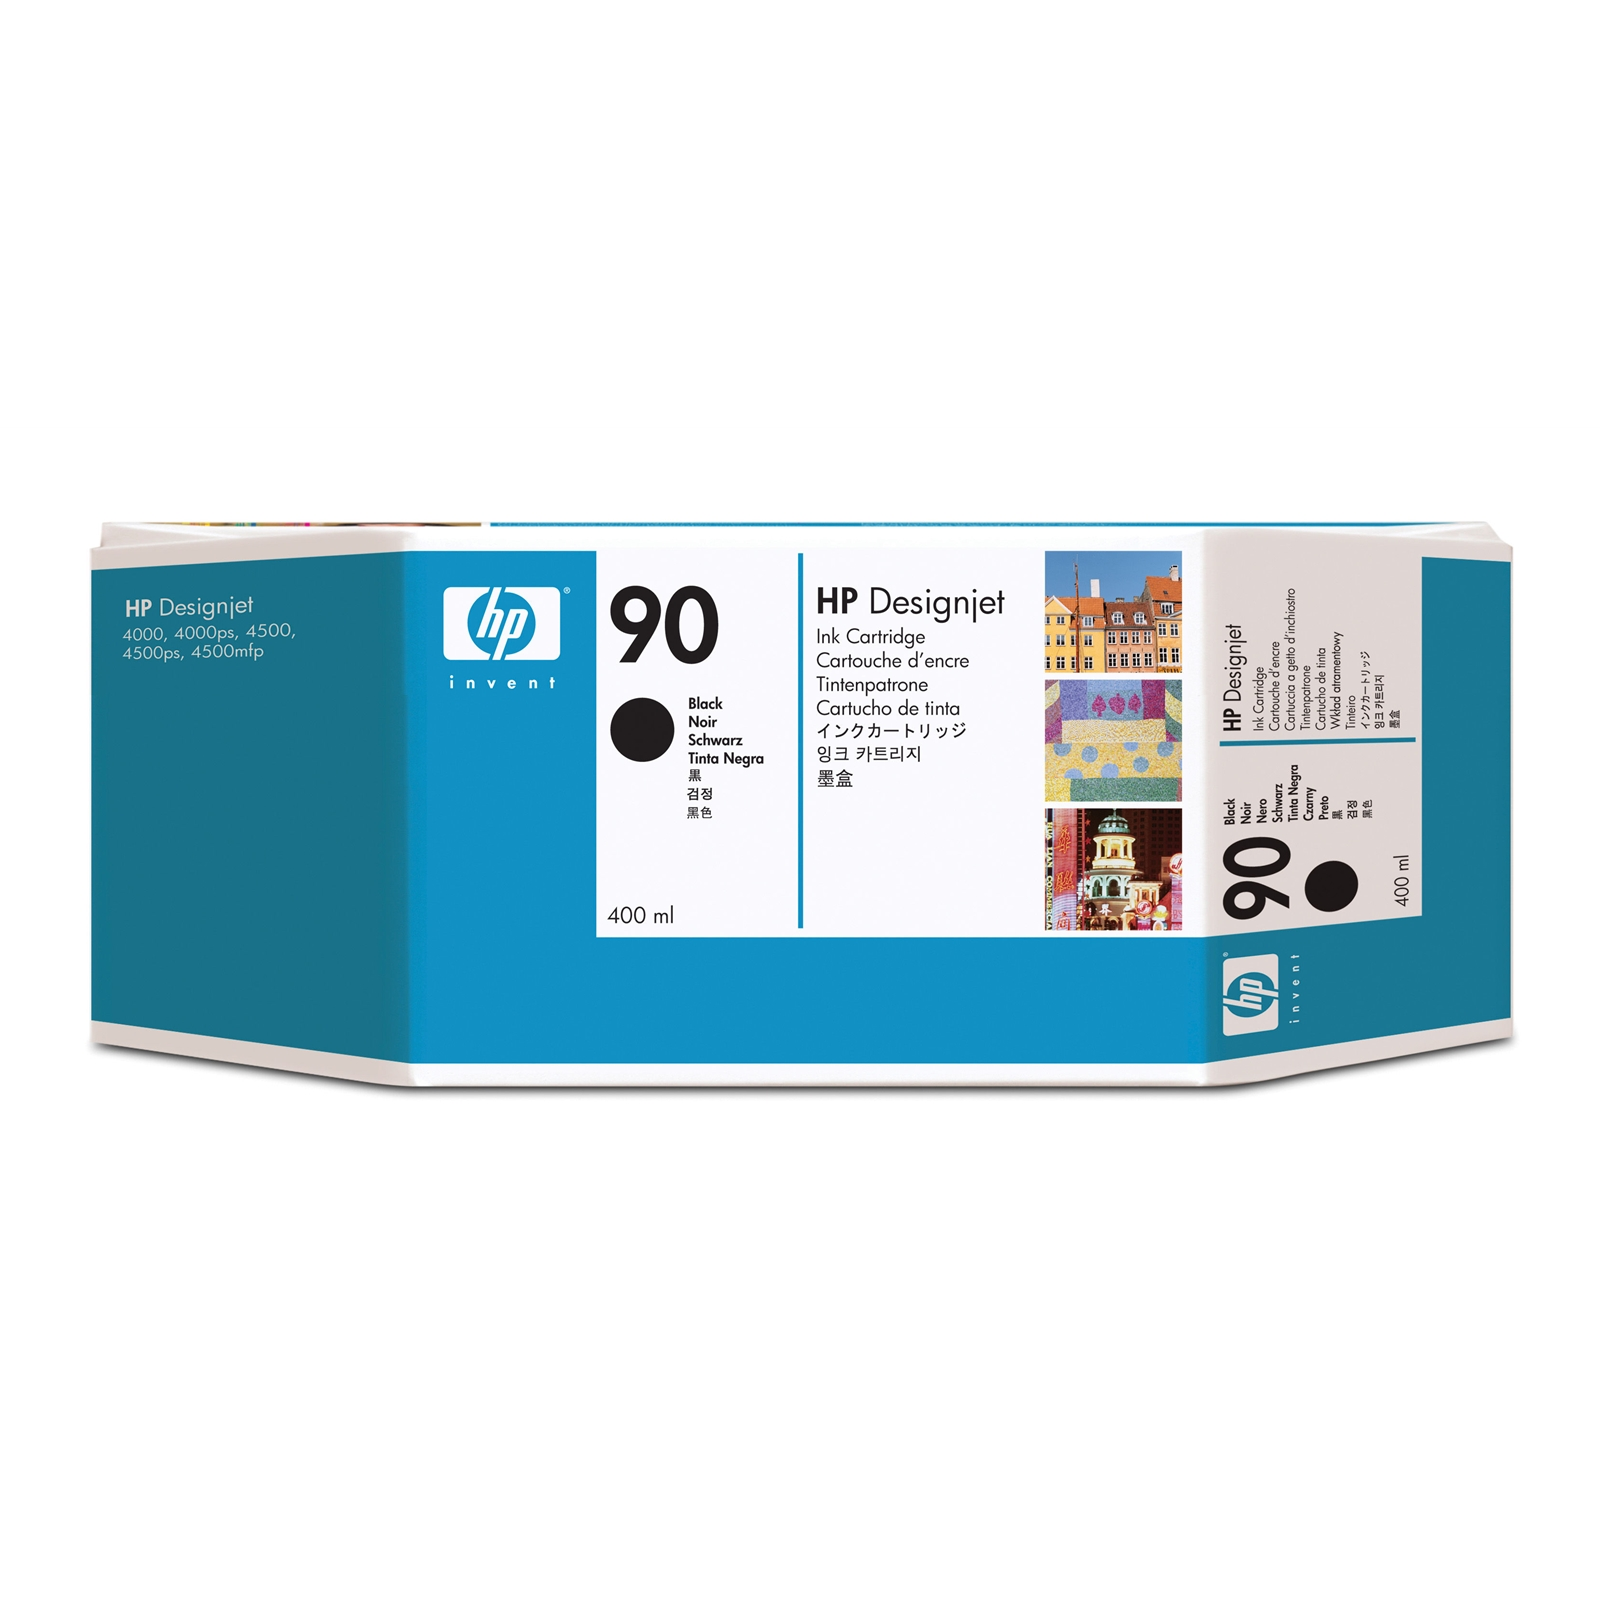 Hewlett Packard Inkjet Cartridges C5058a Servers Plus Tinta Catridge Hp 950 Xl Black Original Ink Serversplus